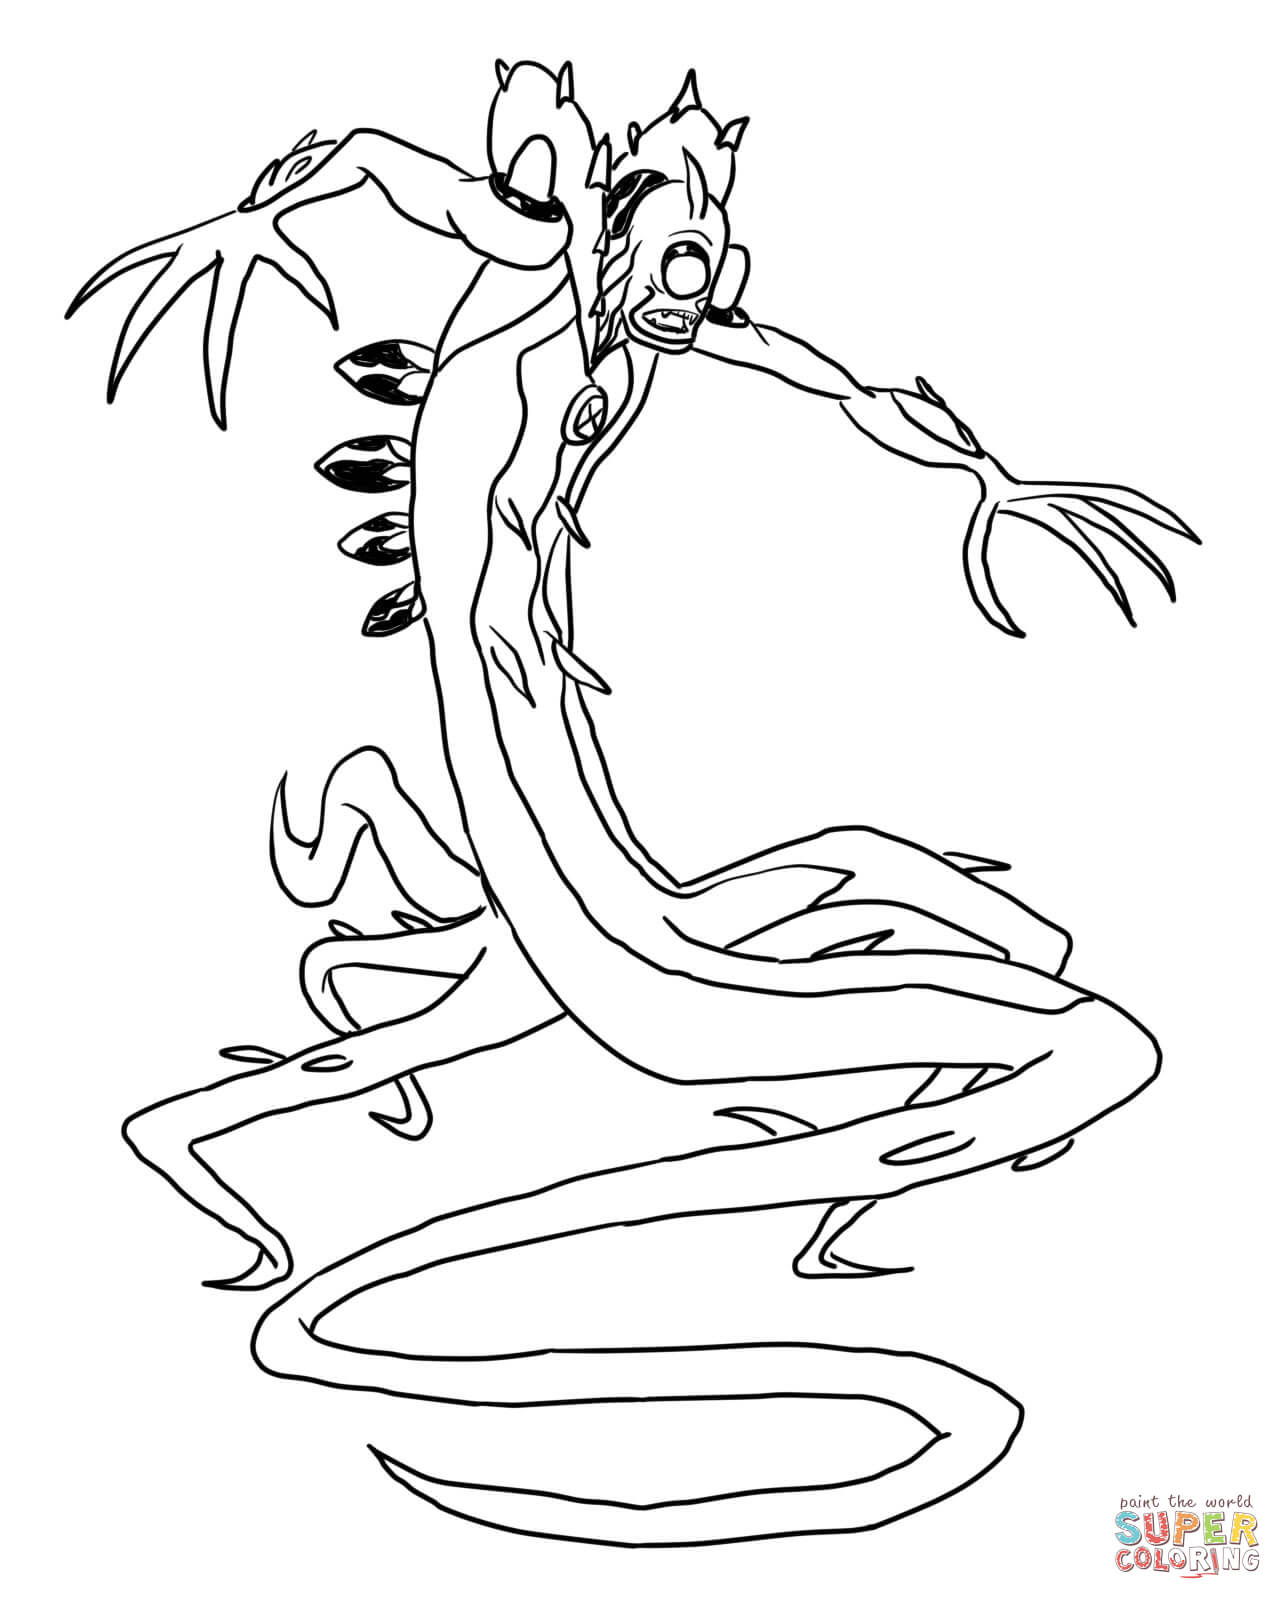 Ben 10 Wildvine From Ben 10 Coloring Page